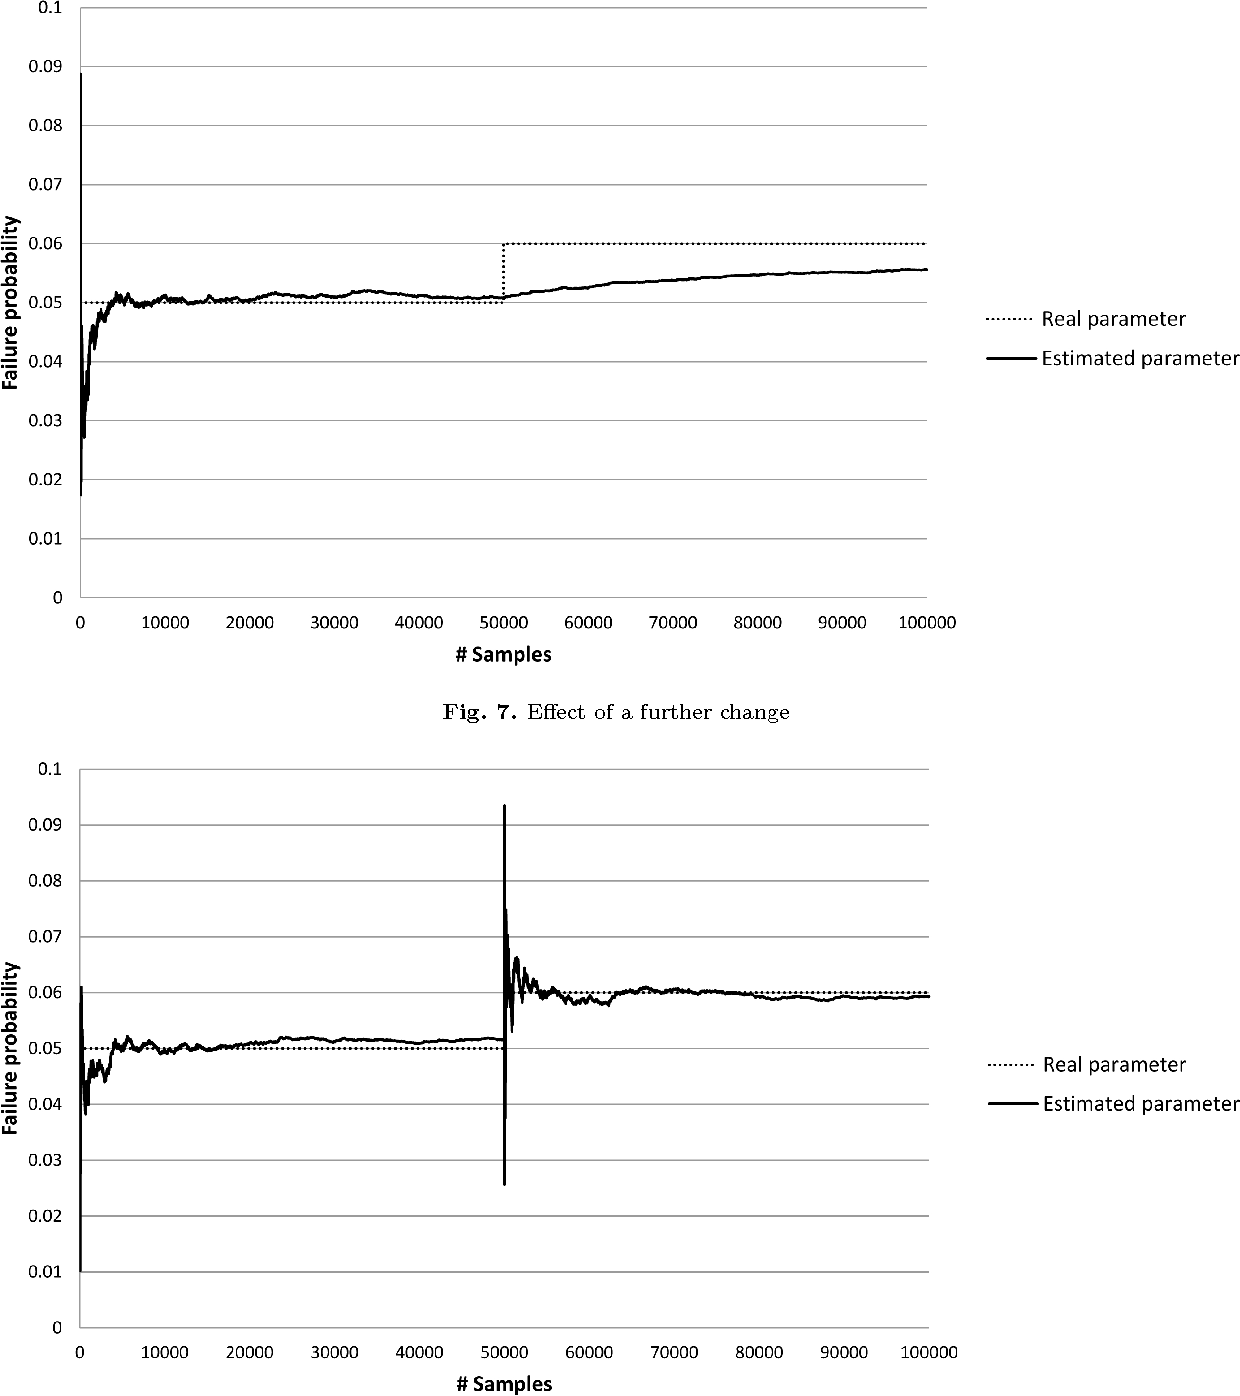 Fig. 7. Effect of a further change